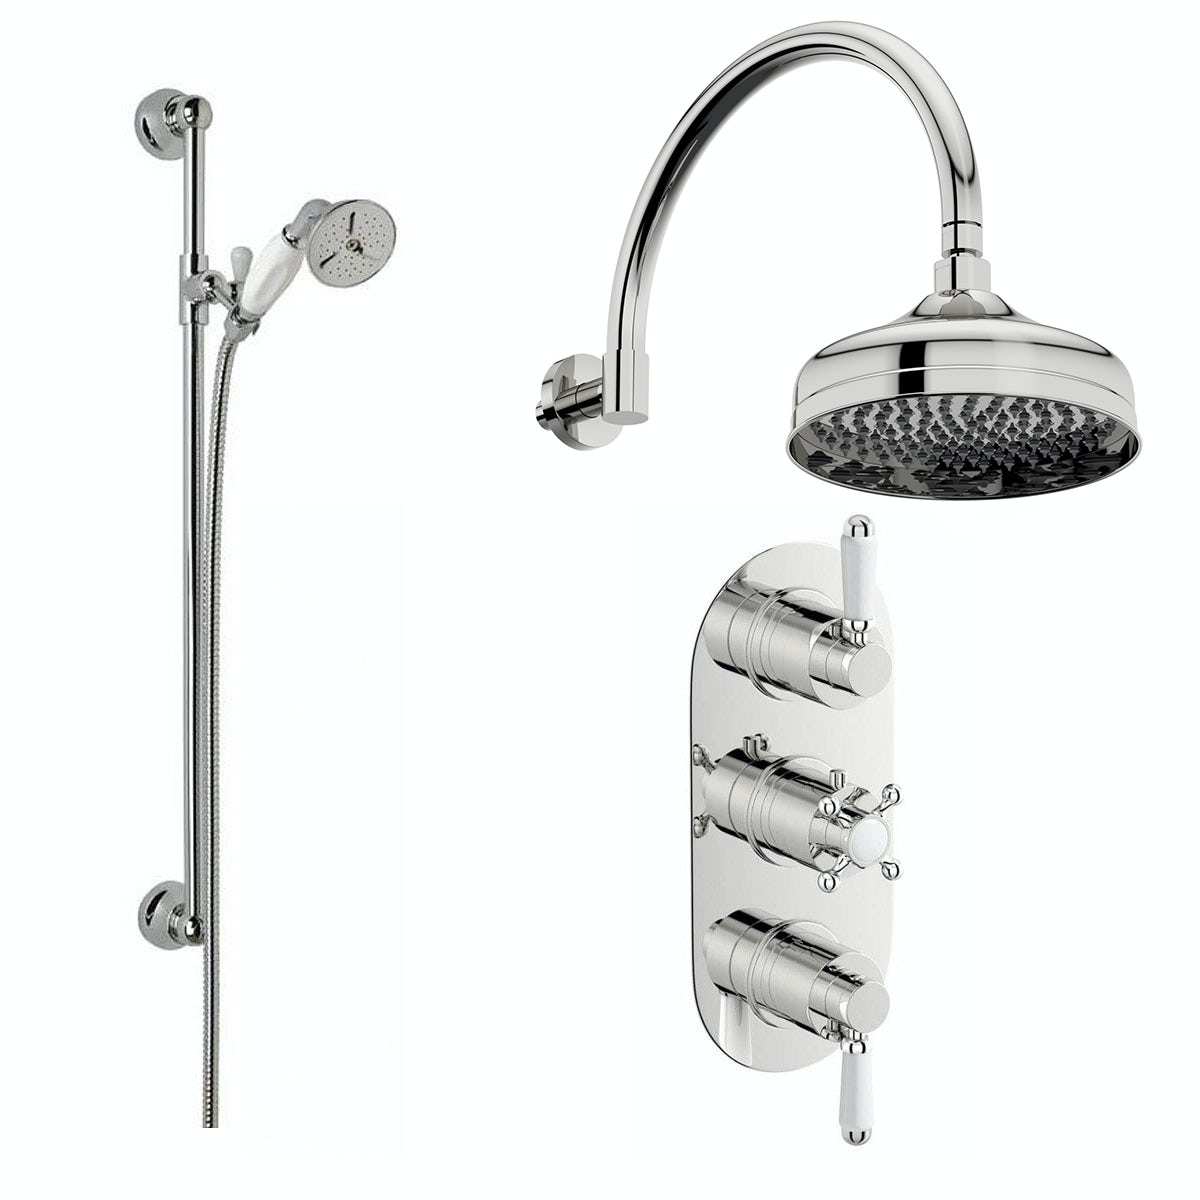 Body Jet Shower Bathroom: Coniston Shower Valve With Body Jets Wall Shower Set